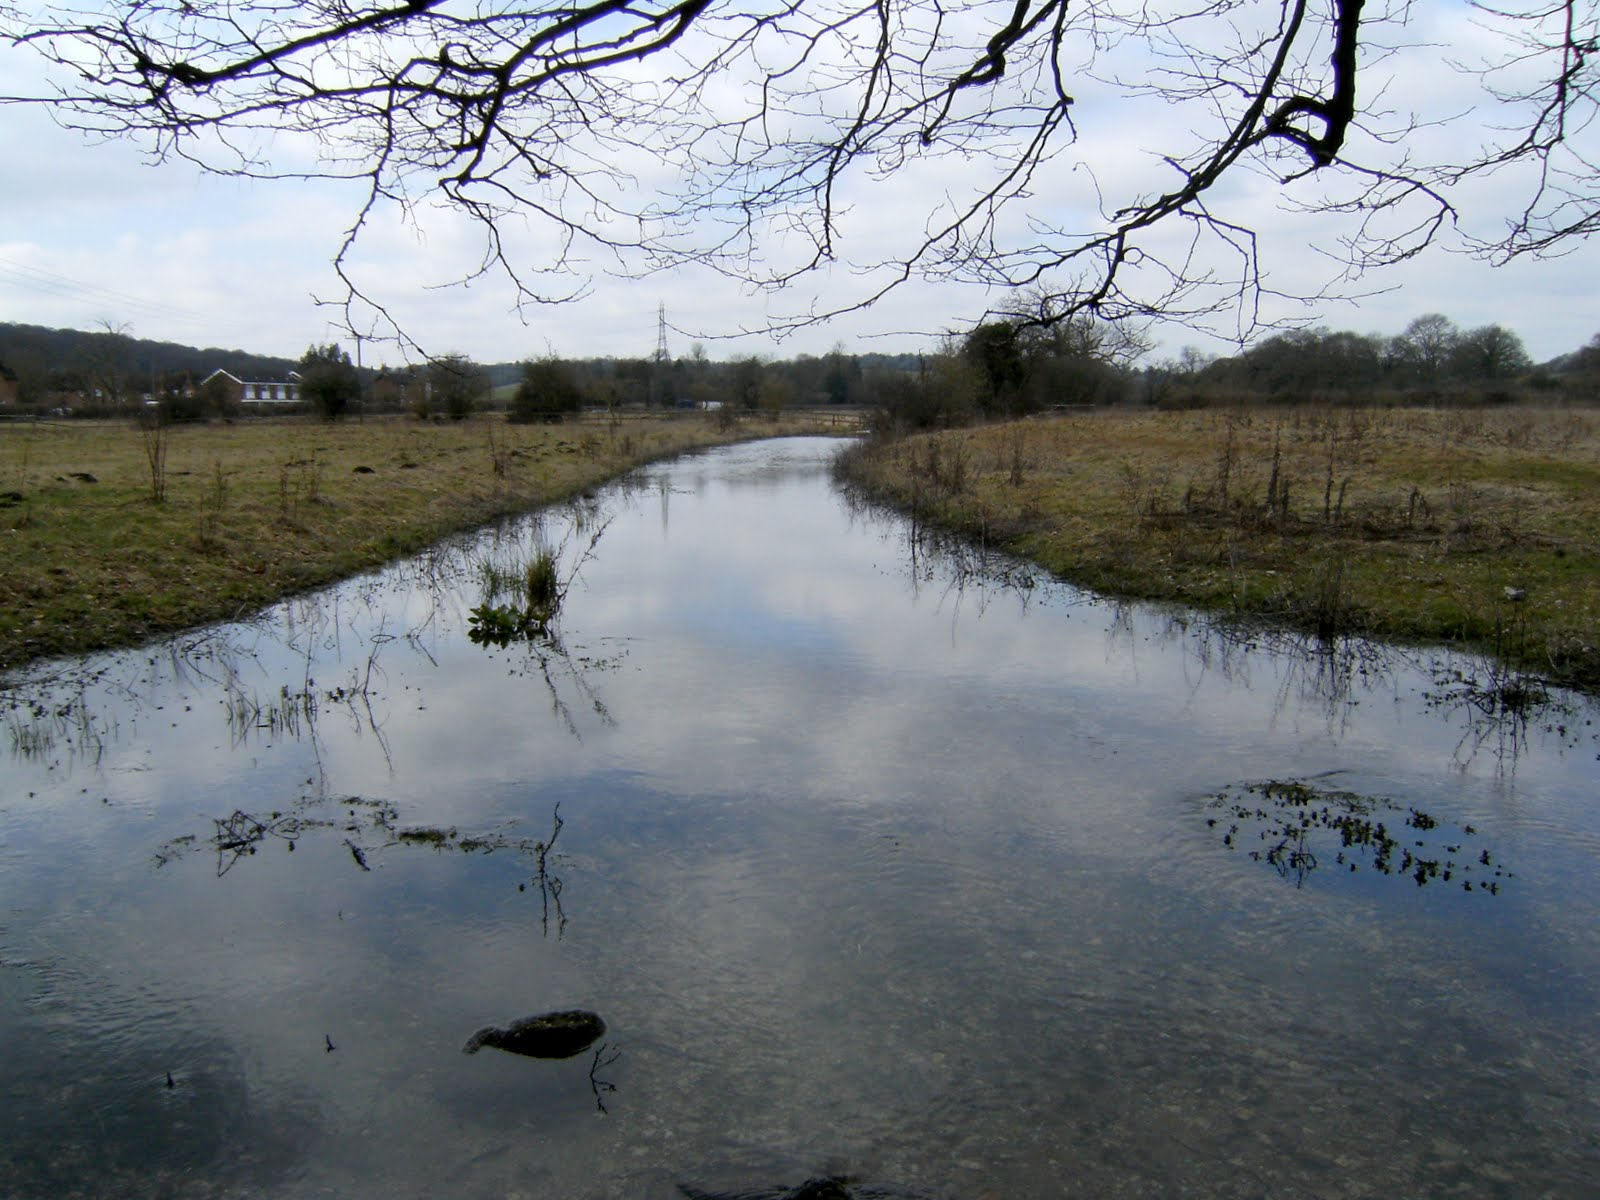 1003130004 More than a stream: River Misbourne in spring